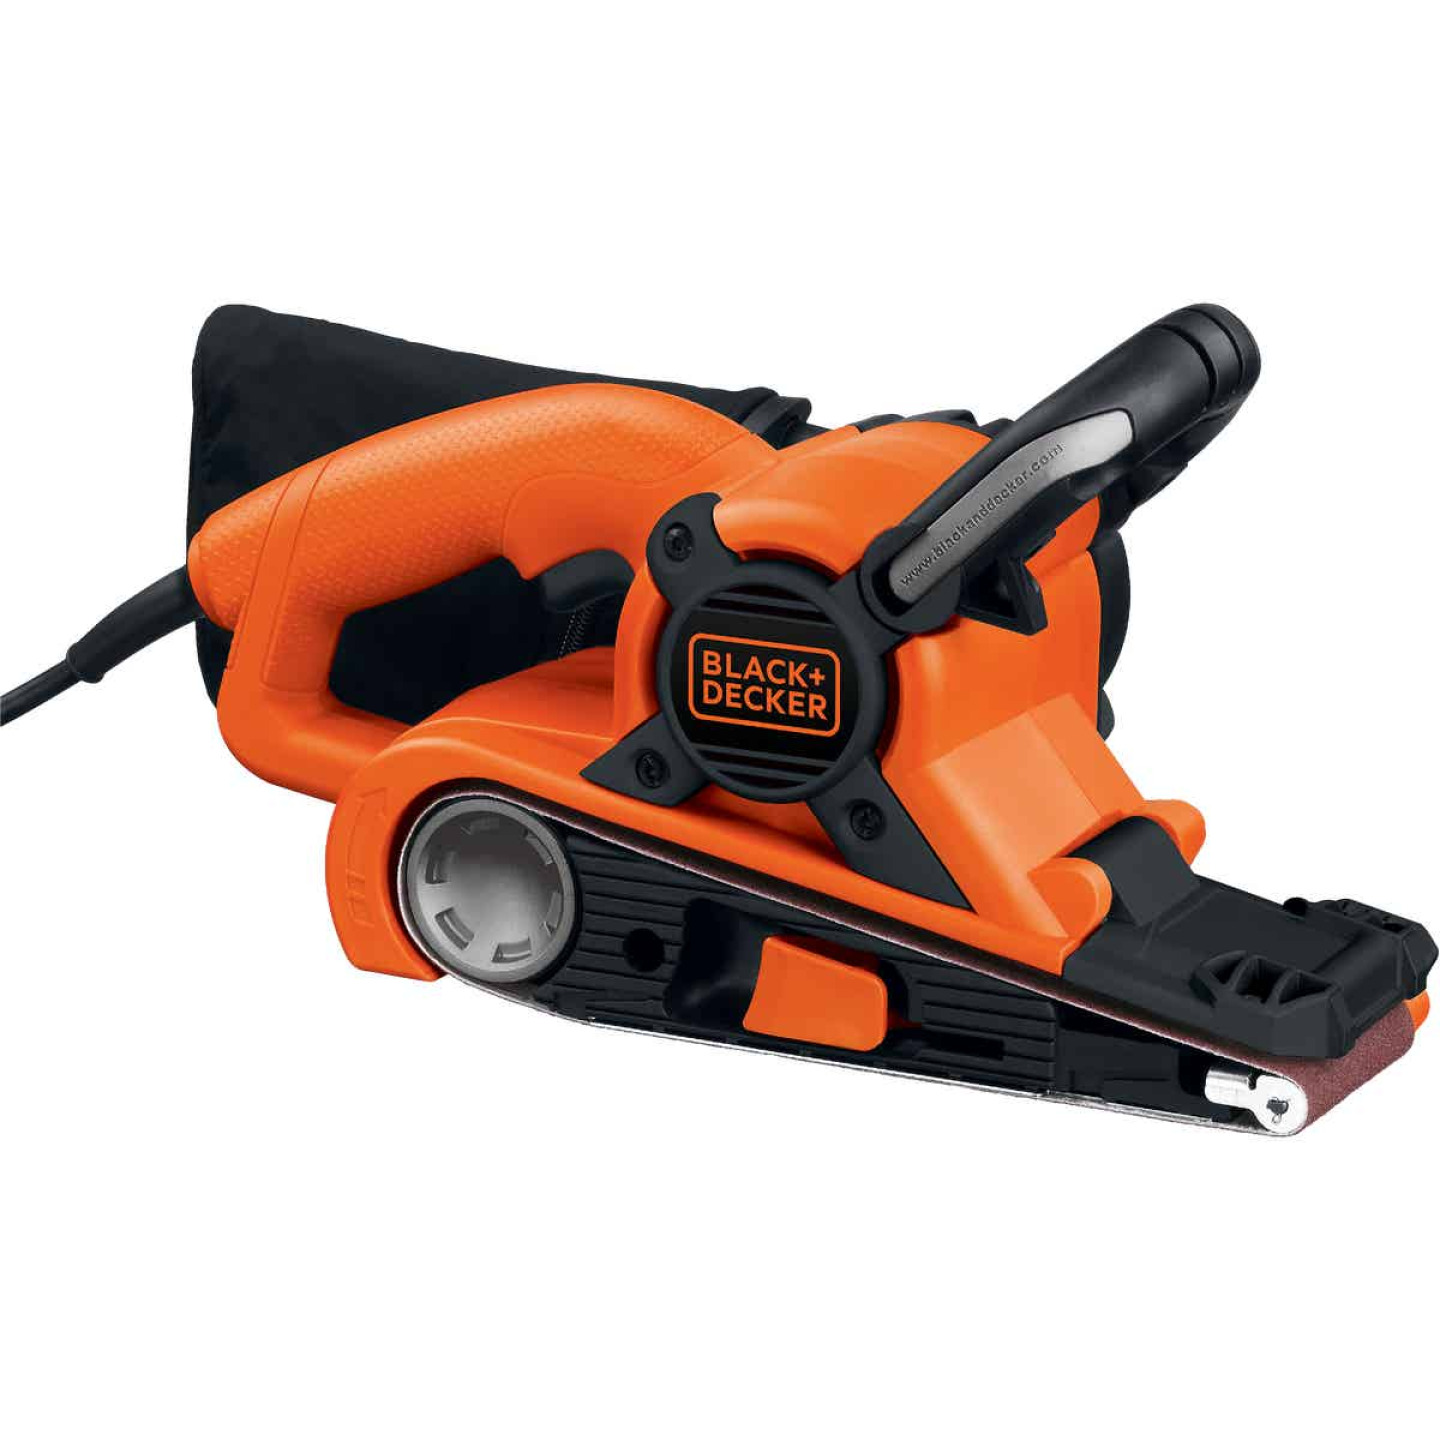 Black & Decker 3 In. x 21 In. Dragster Belt Sander Image 1